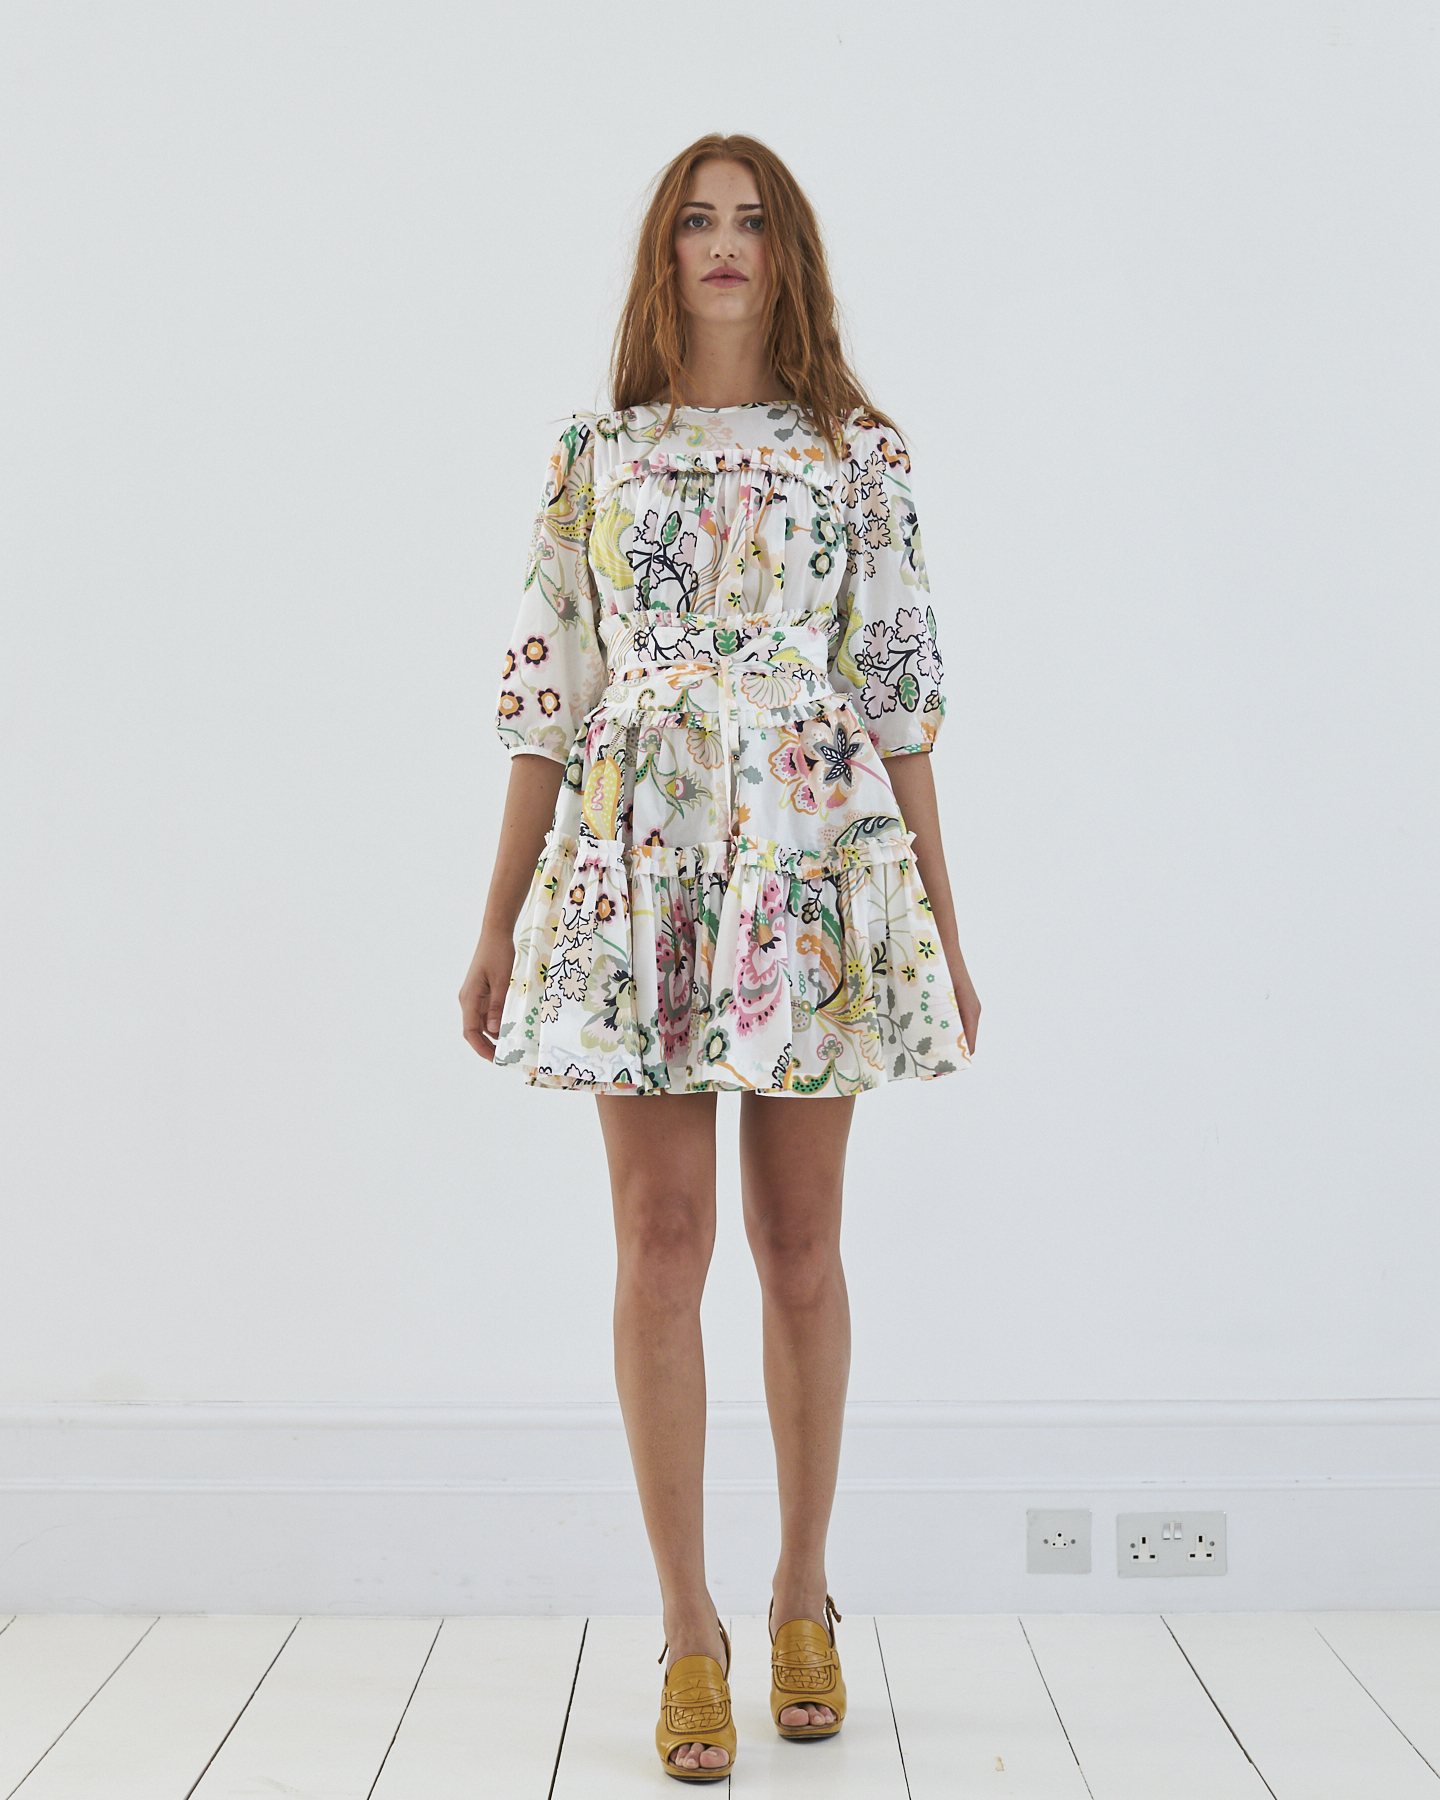 Dolly Print Mini, perfect for showing off your tiny waist and fabulous legs. Imagine in black...